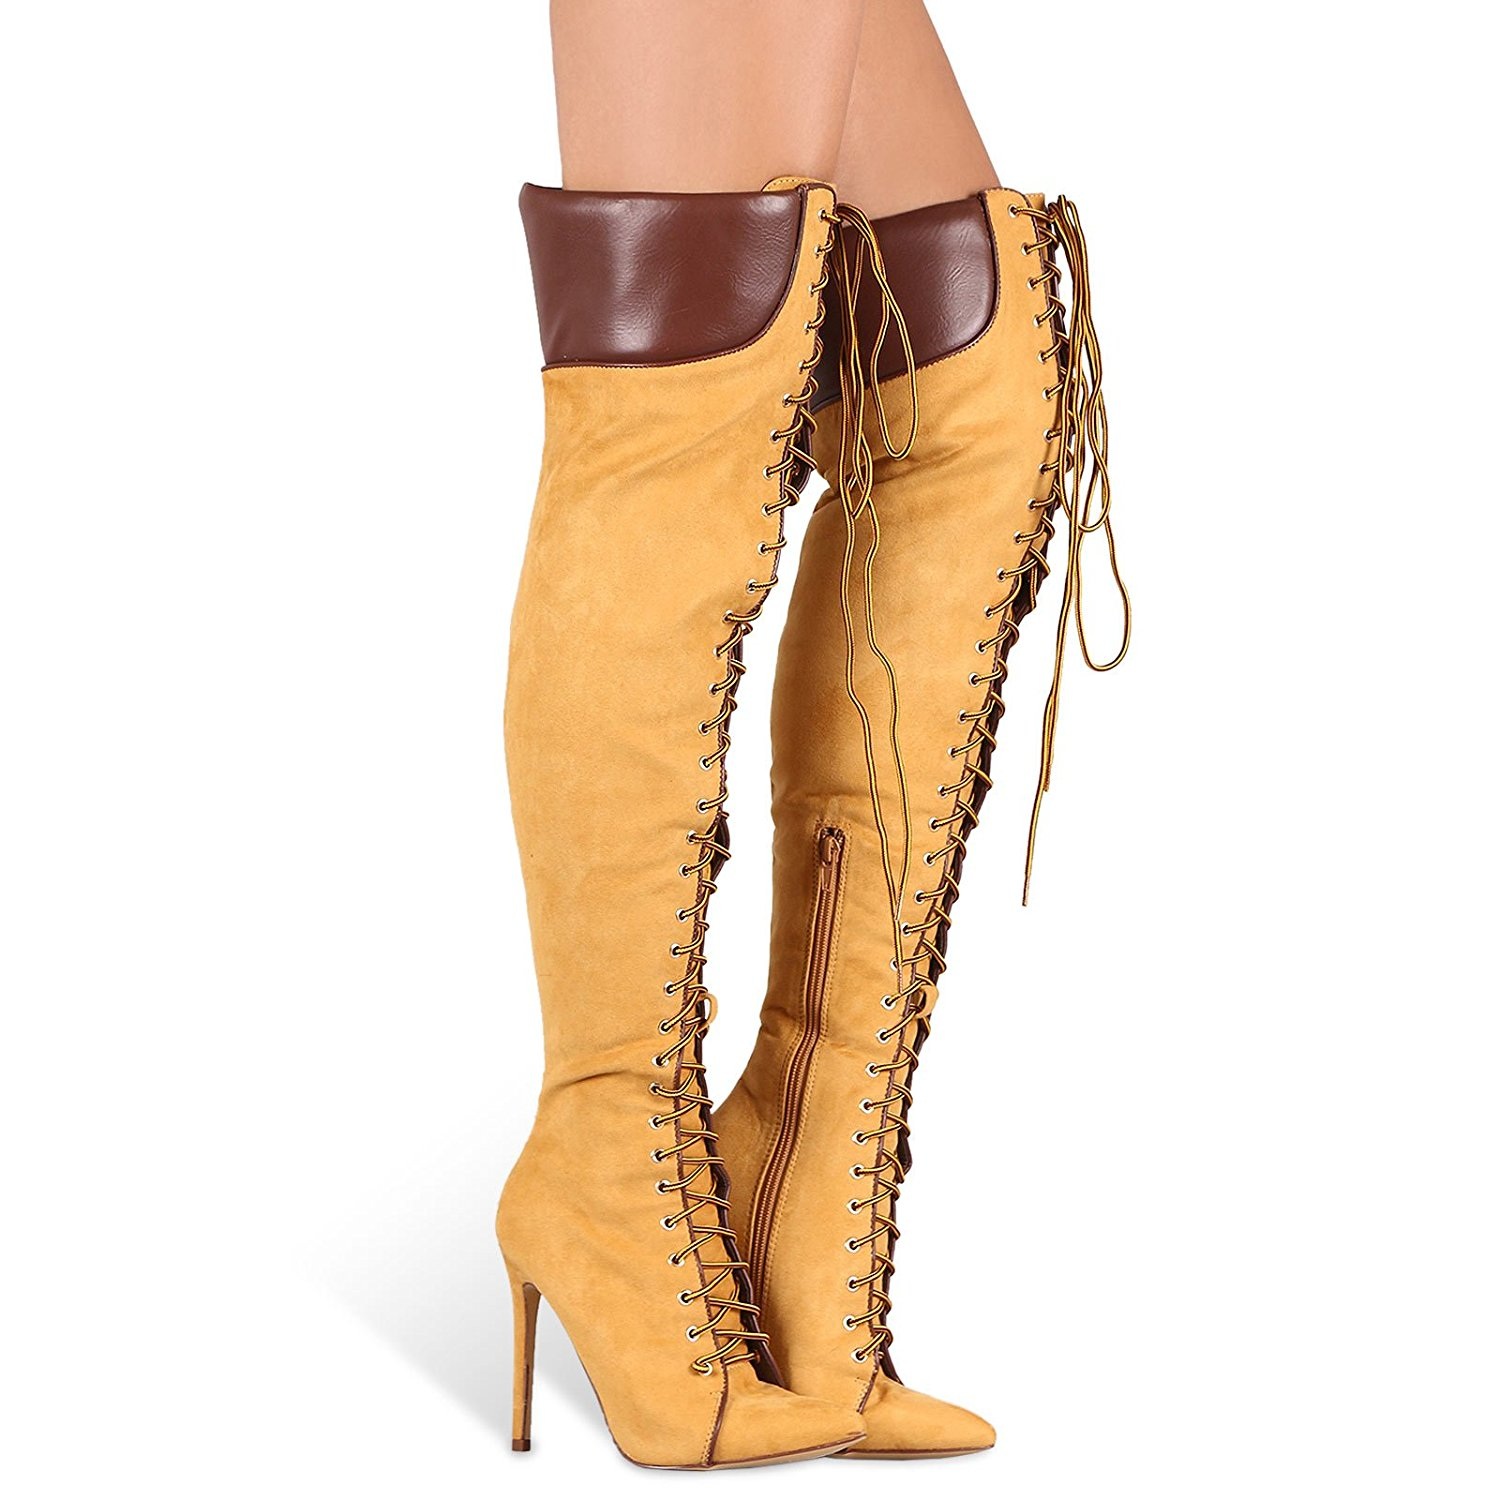 b72ecd5b25 Get Quotations · Liliana Million Thigh High Over Knee Lace Up Pointy Toe High  Heel Boots